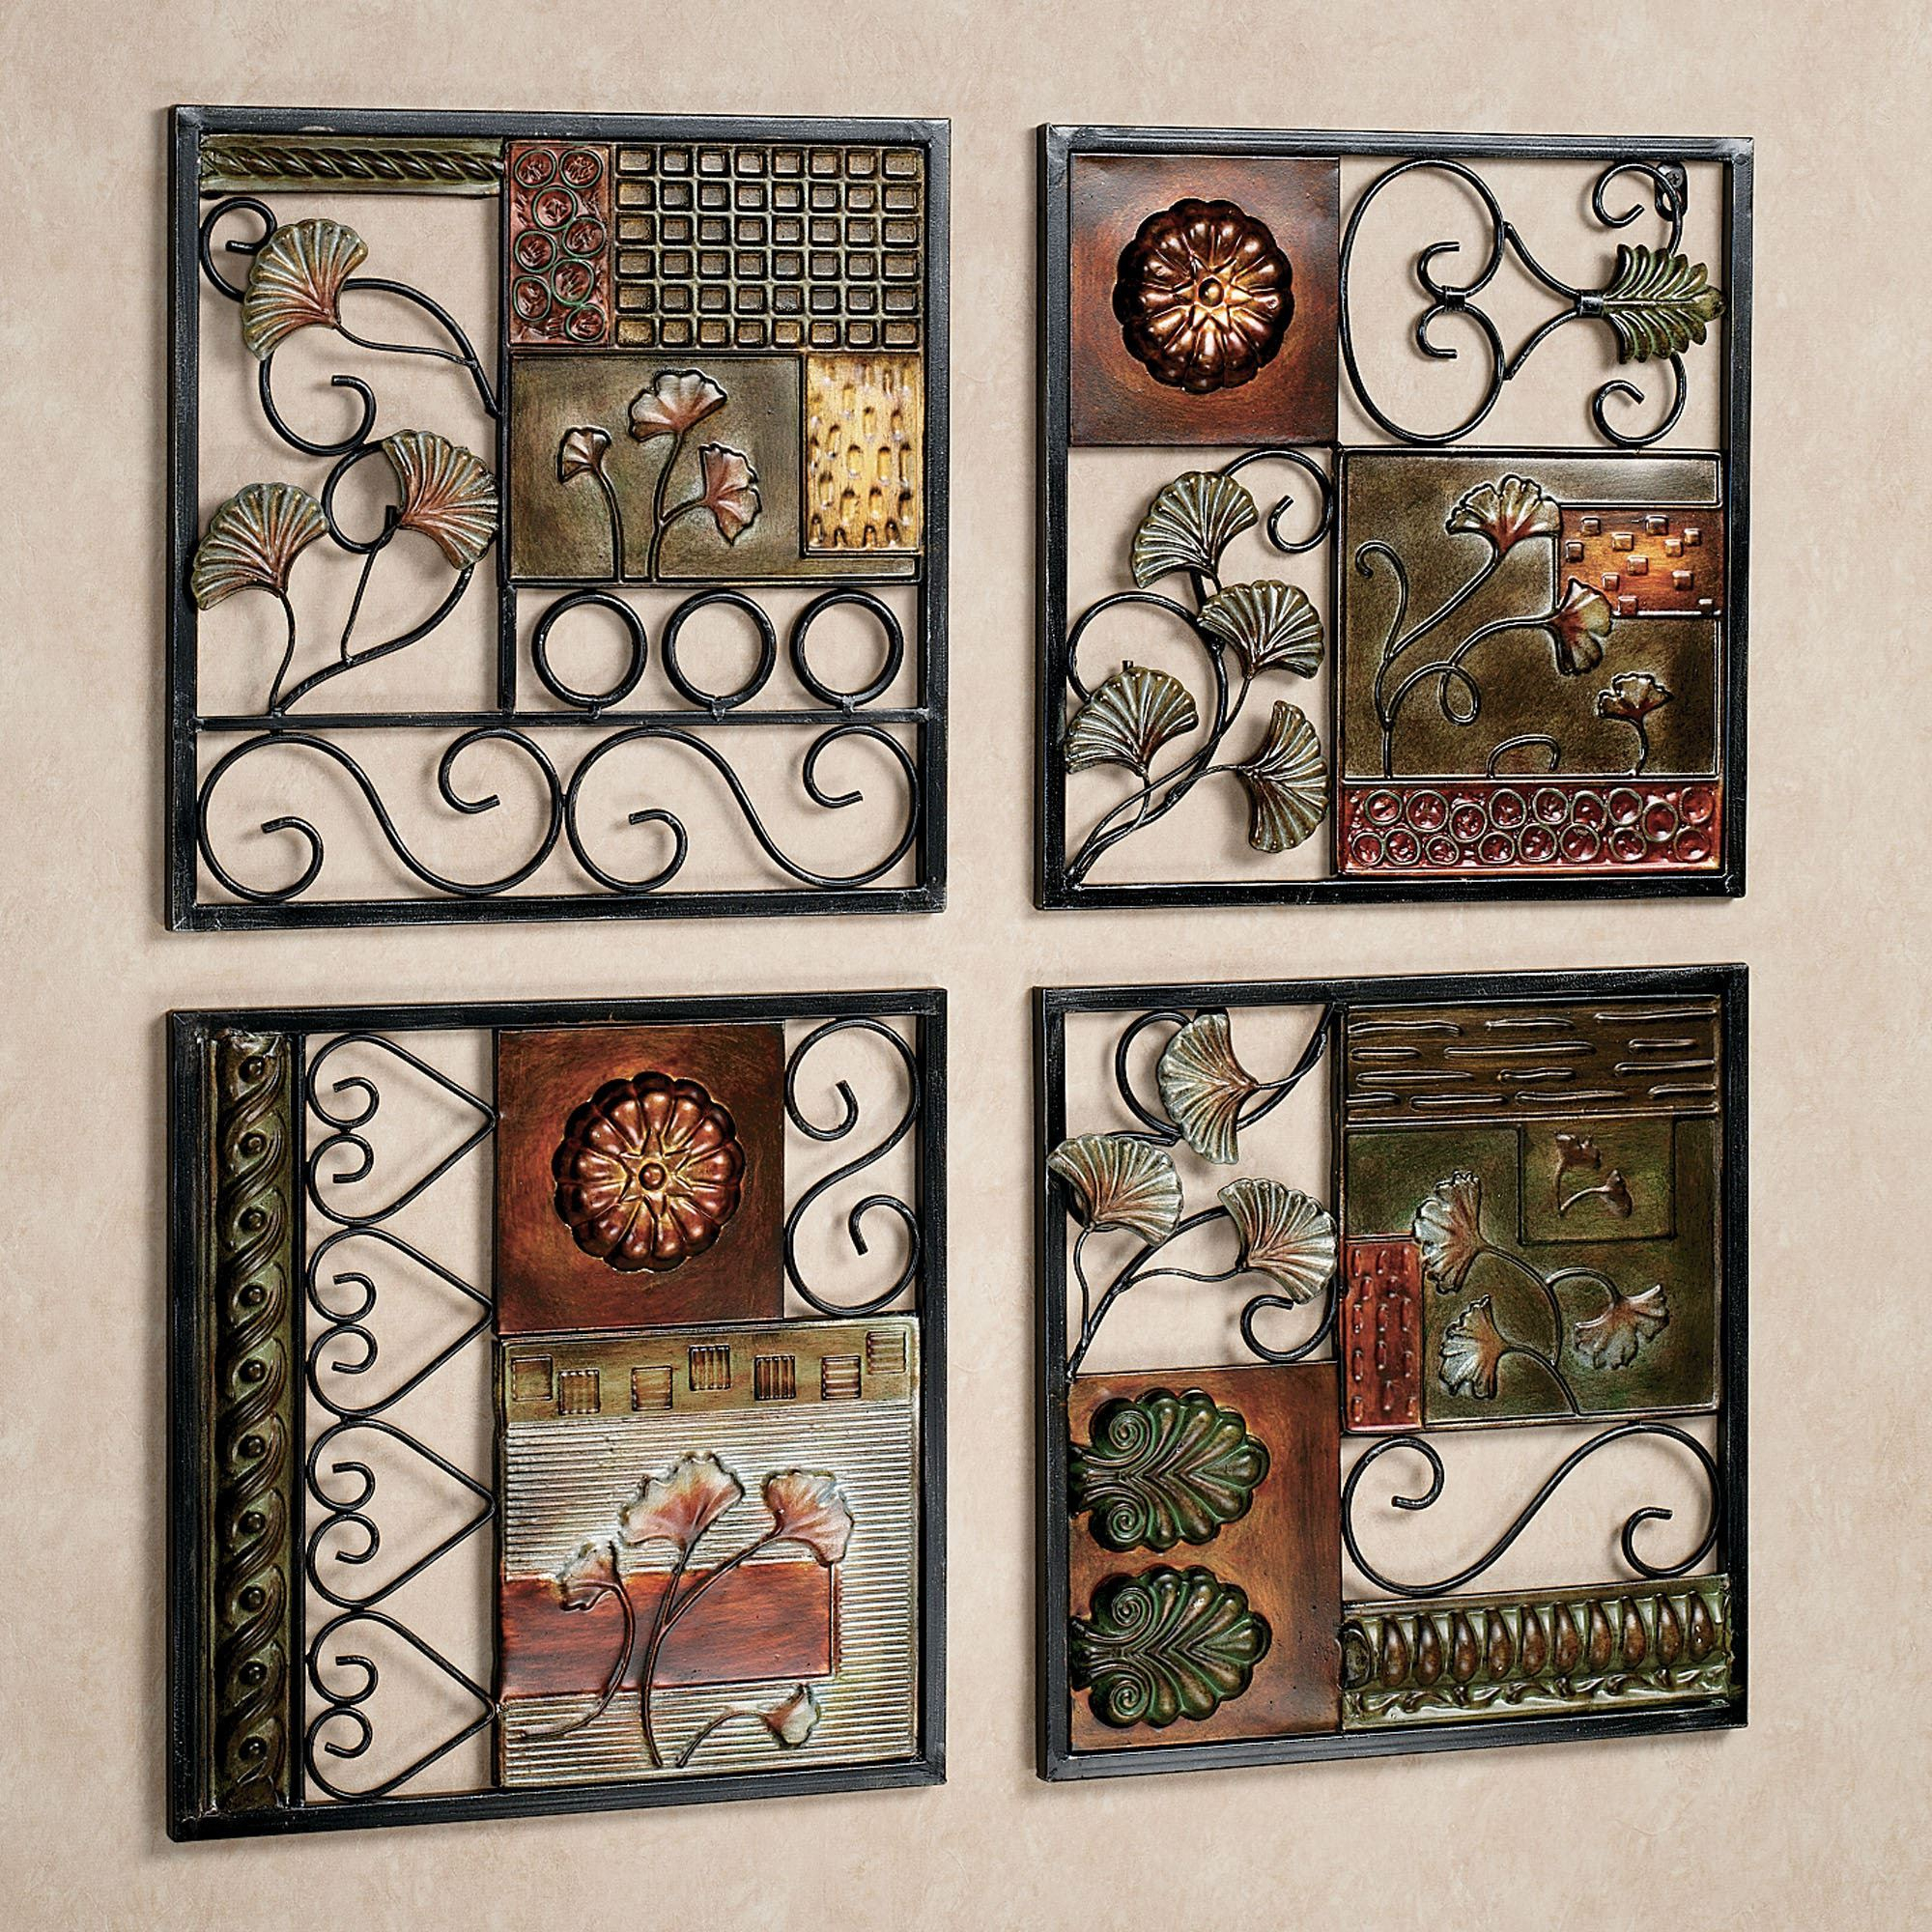 Dusk And Dawn Metal Wall Art Set for Brown Wood And Metal Wall Decor (Image 12 of 30)